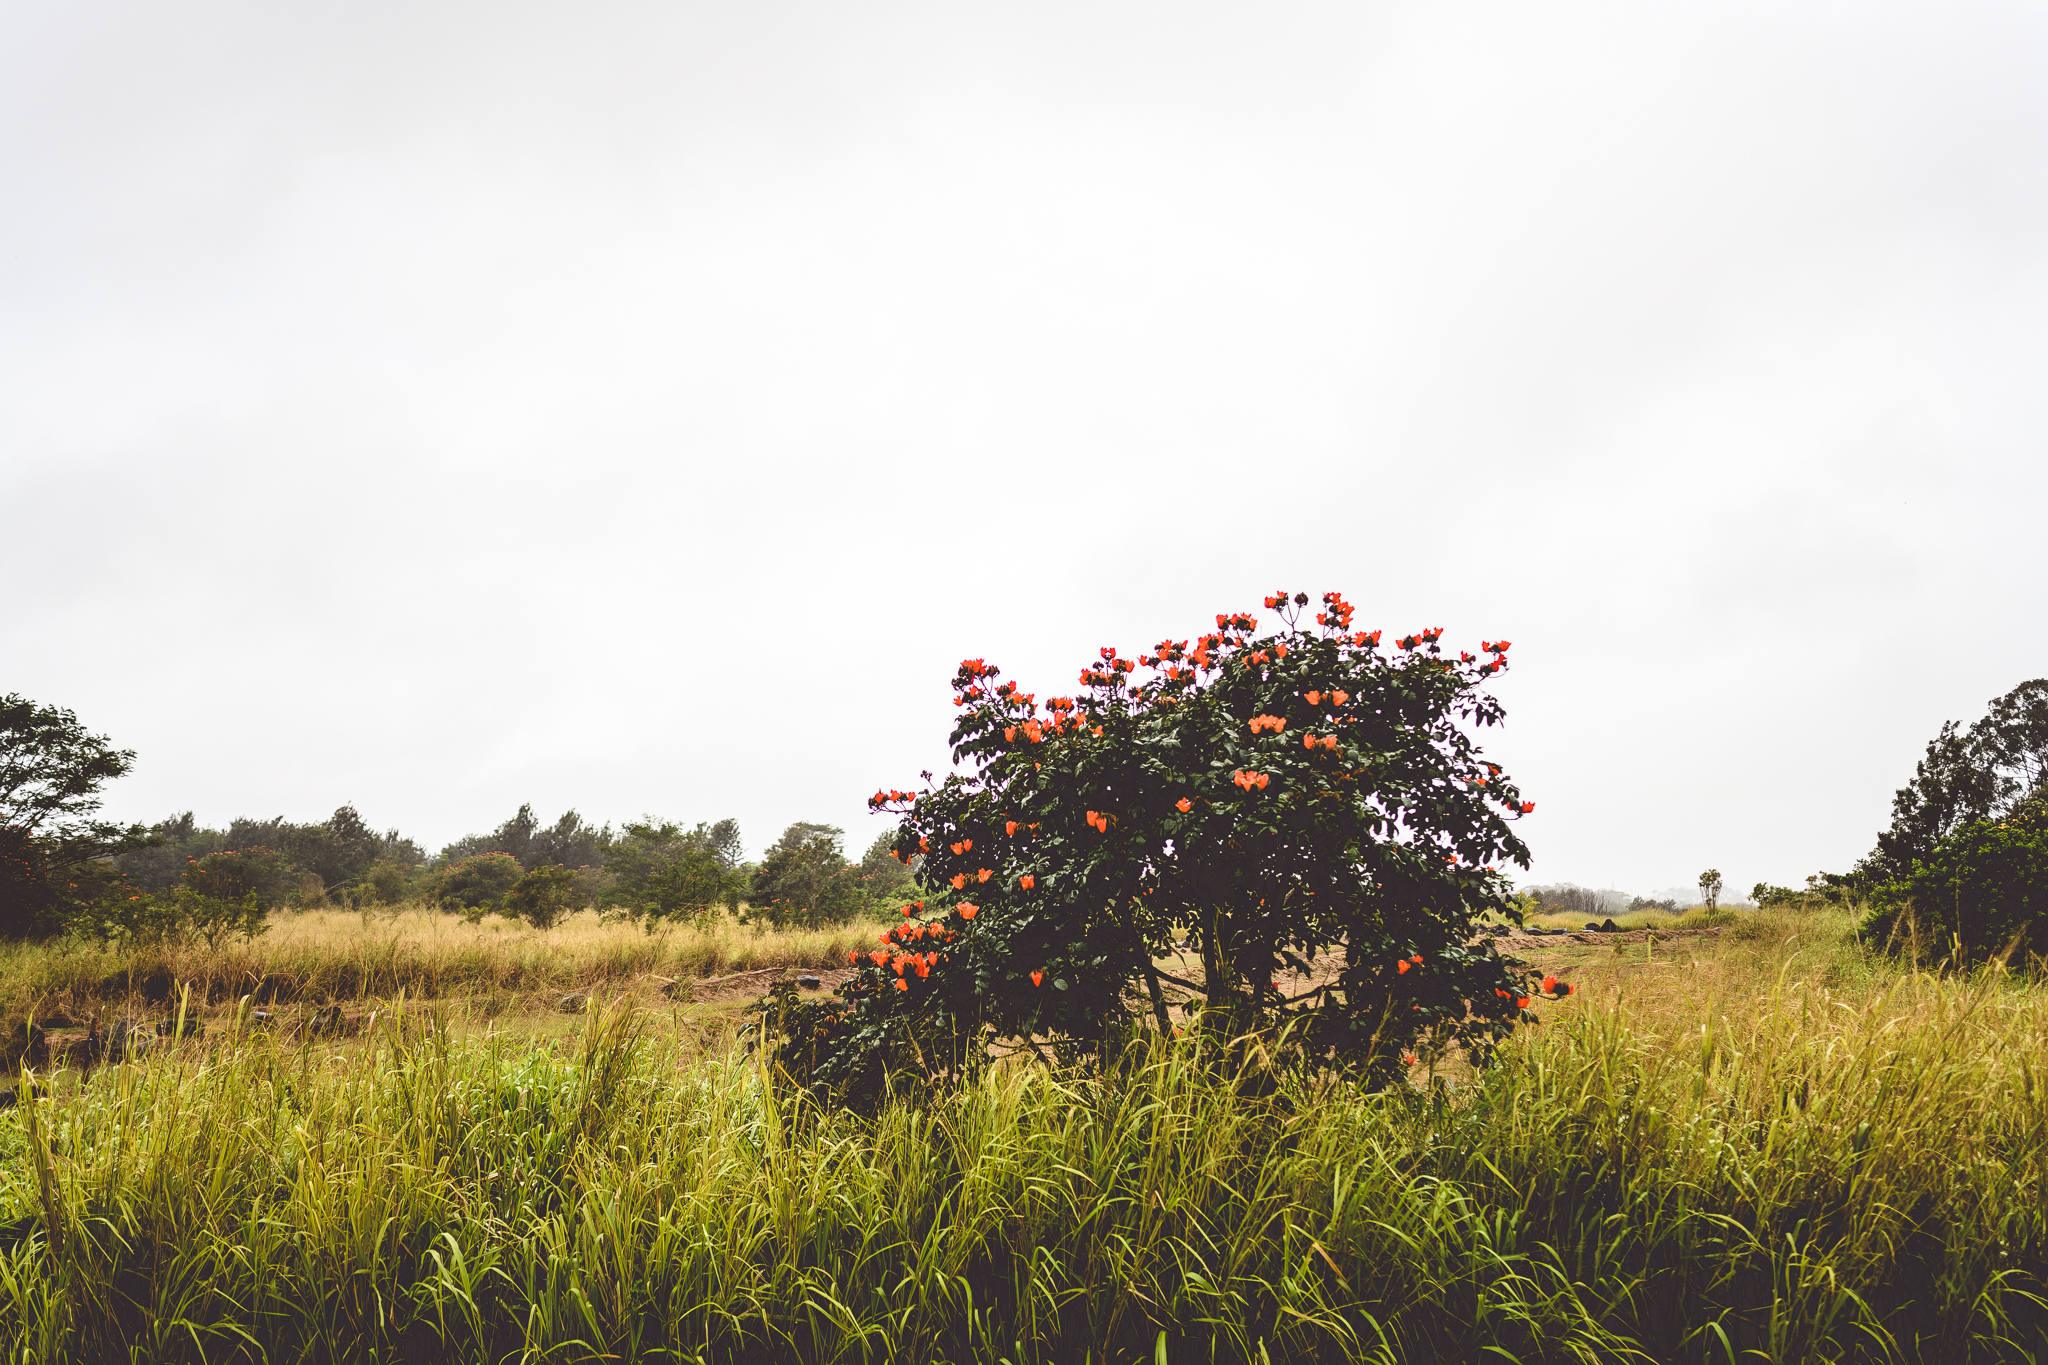 african tulip tree in lone field on a foggy day north shore oahu hawaii